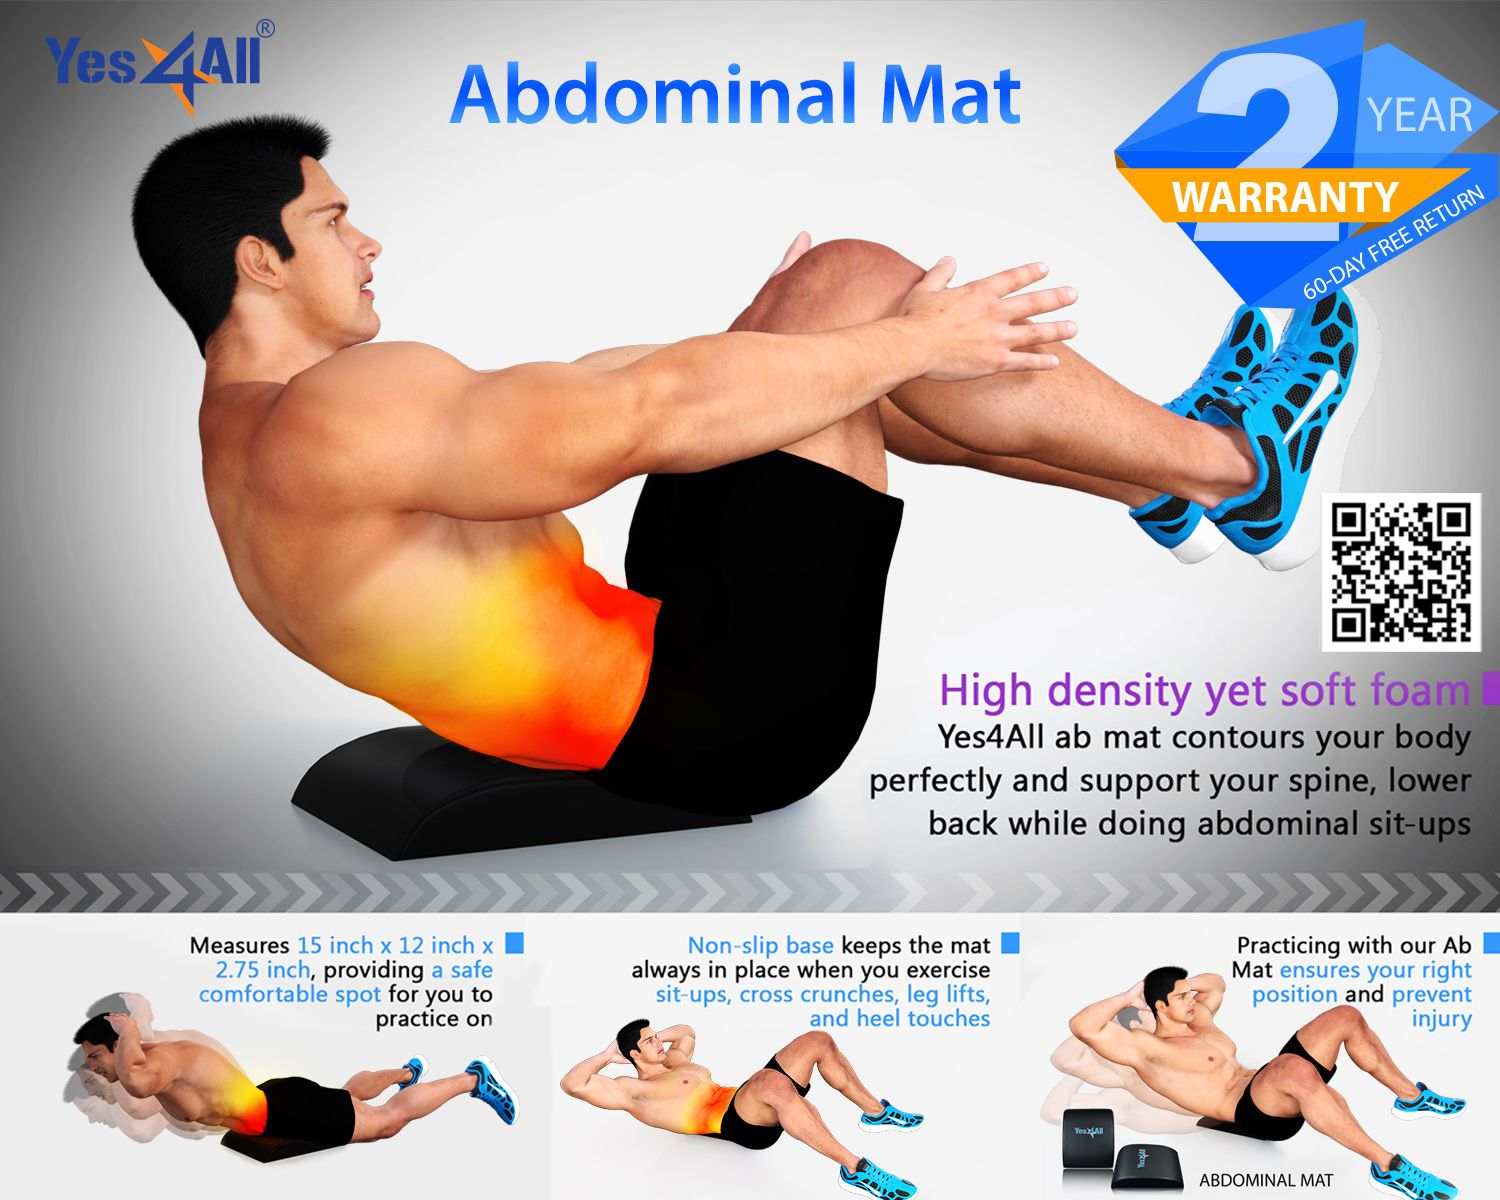 Pin By Yes4all On Yes4all Ab Mat Abdominal Muscles Abdominal Exercises Abdominal